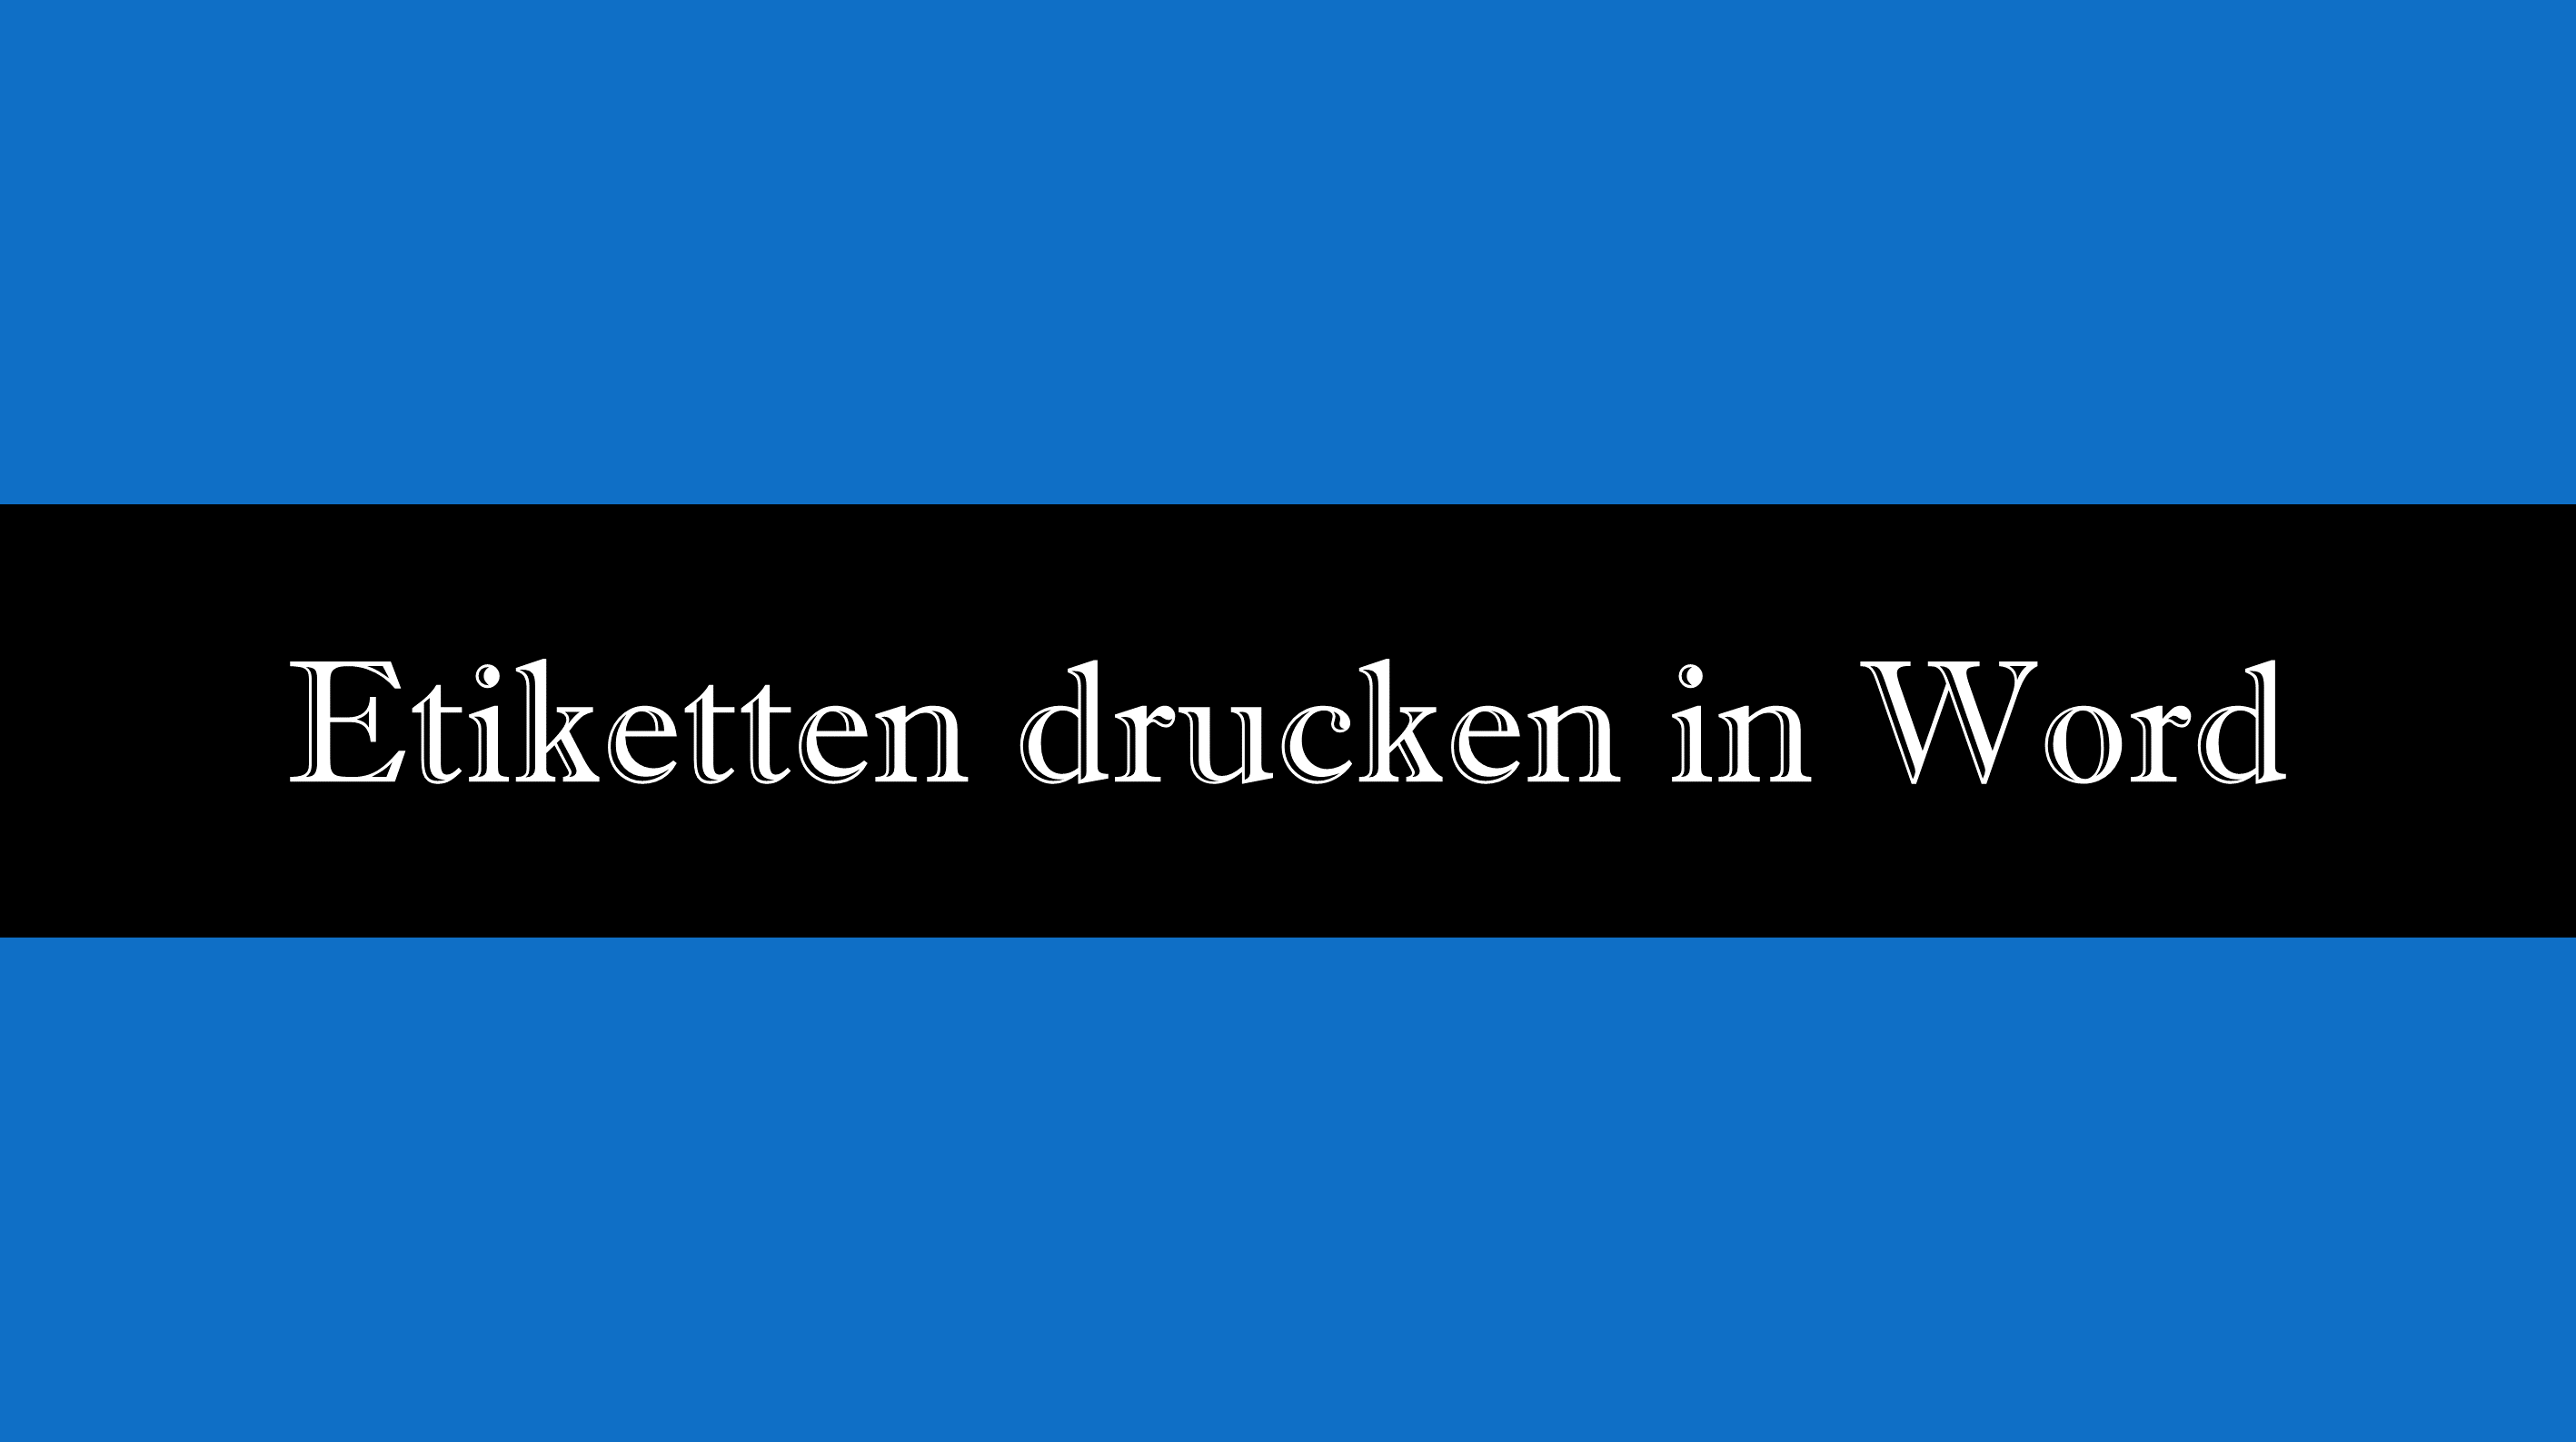 Etiketten drucken in Word